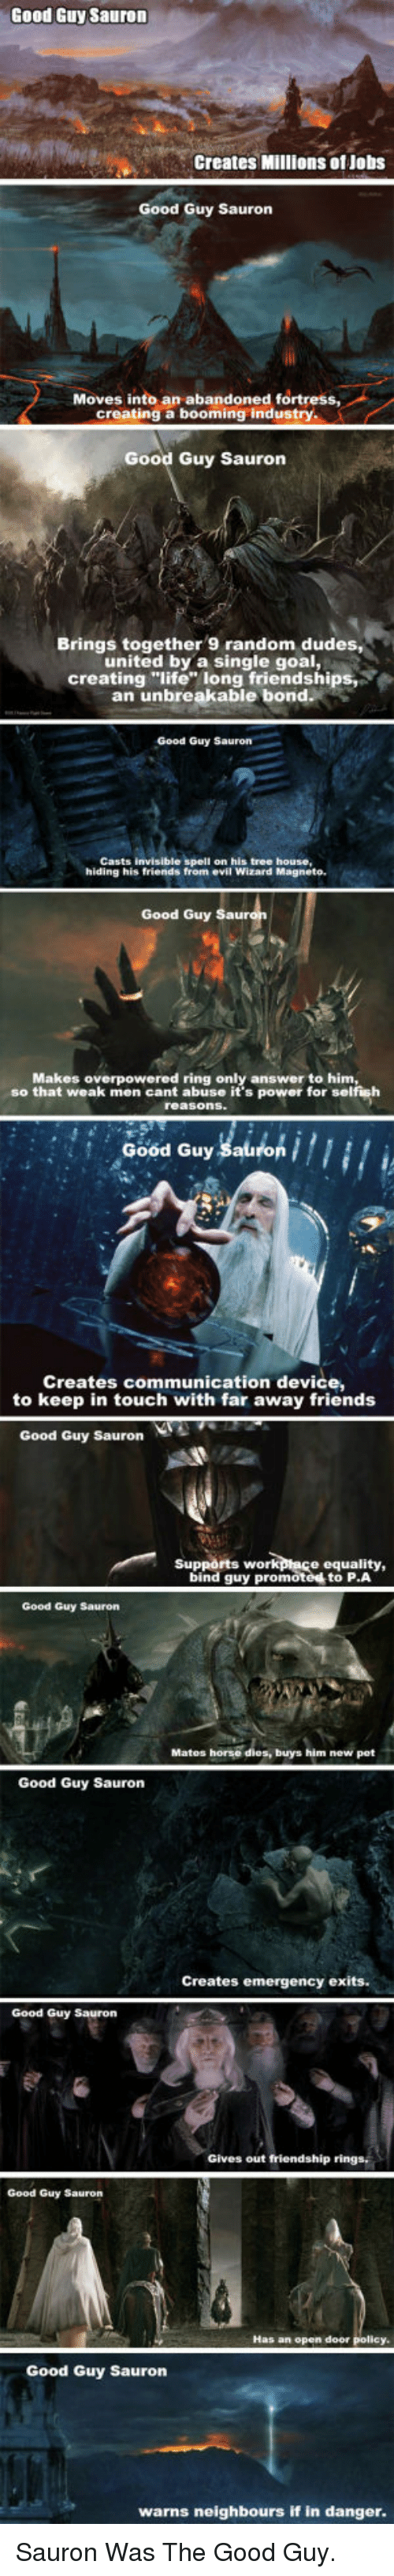 """the good guy: Good Guy Sauron  Creates Millions of Jobs  Good Guy Sauron  Moves into an abandoned fortress  creating a booming industry  Good Guy Sauron  Brings together 9 random dudes,  united by a single goal,  creating """"life long friendships  an unbreakable bond  Good Guy Sauron  Casts invisible spell on his tree house,  hiding his friends from evil Wizard Magneto  Good Guy  Makes overpowered ring only answer to him  so that weak men cant abuse it's power for selfish  Good Guy Sauron  Creates communication device,  to keep in touch with far away friends  Good Guy Sauron  Supports work  ptace equality,  bind guy promoted to P.A  Good Guy Sauron  Mates horse dies, buys him new pet  Good Guy Sauron  Creates emergency exits.  Good Guy Sauron  Gives out friendship rings,  Good Guy Sauron  Has an open door  Good Guy Saurorn  warns neighbours if in danger <p>Sauron Was The Good Guy.</p>"""